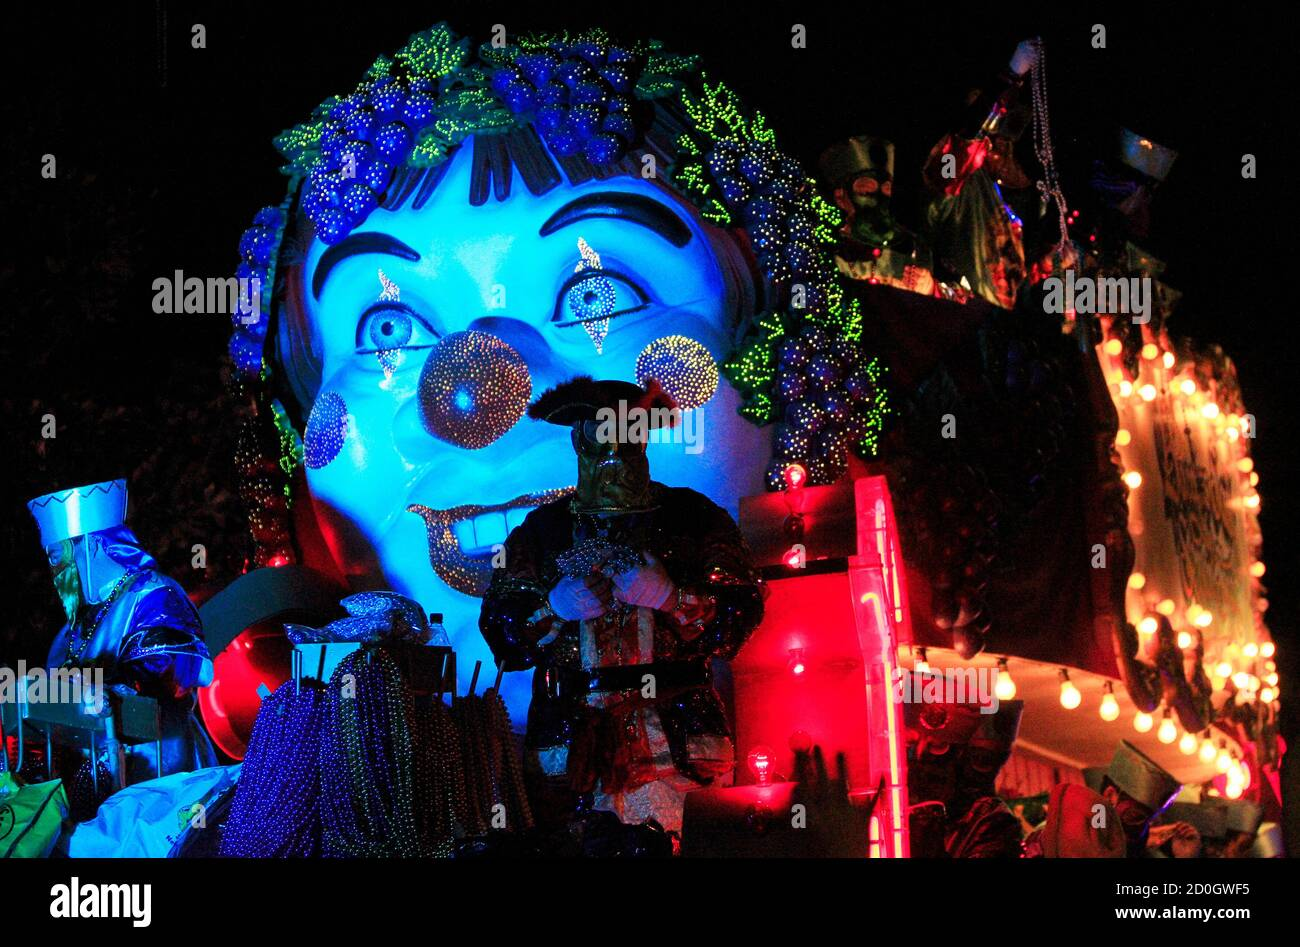 Members of the Krewe of Bacchus parade down St. Charles Avenue during the weekend before Mardi Gras in New Orleans, Louisiana February 10, 2013. Mardi Gras day will be celebrated on February 12, 2013. REUTERS/Sean Gardner (UNITED STATES - Tags: SOCIETY) Stock Photo